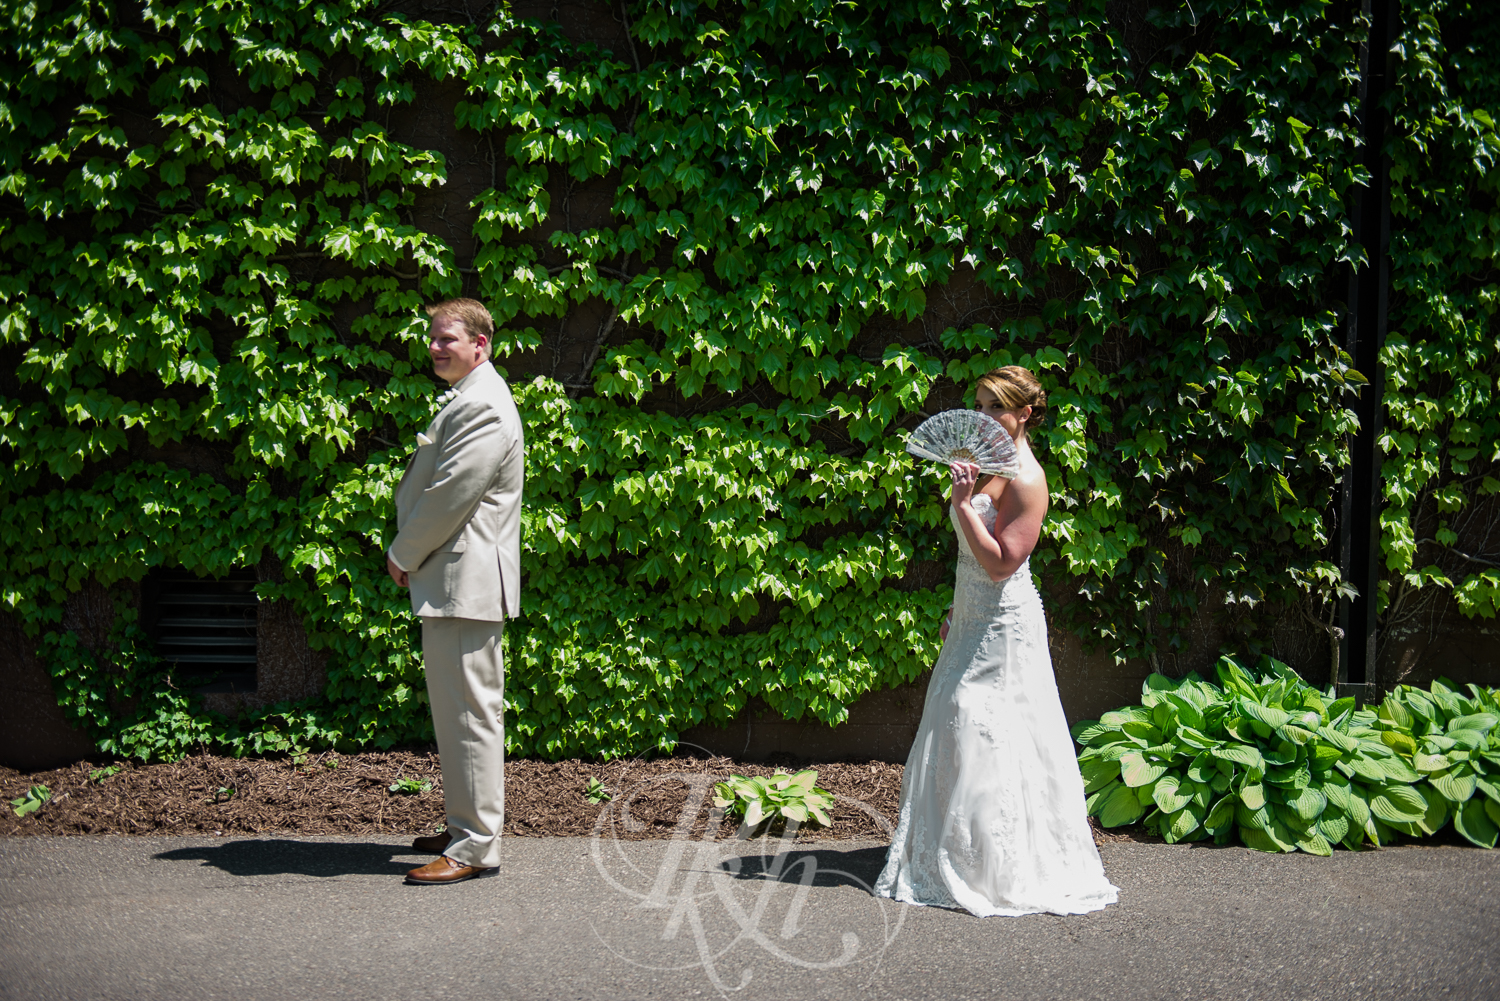 Blog - Whitney & Brent - Minnesota Wedding Photographer - RKH Images - Blog 3-1.jpg